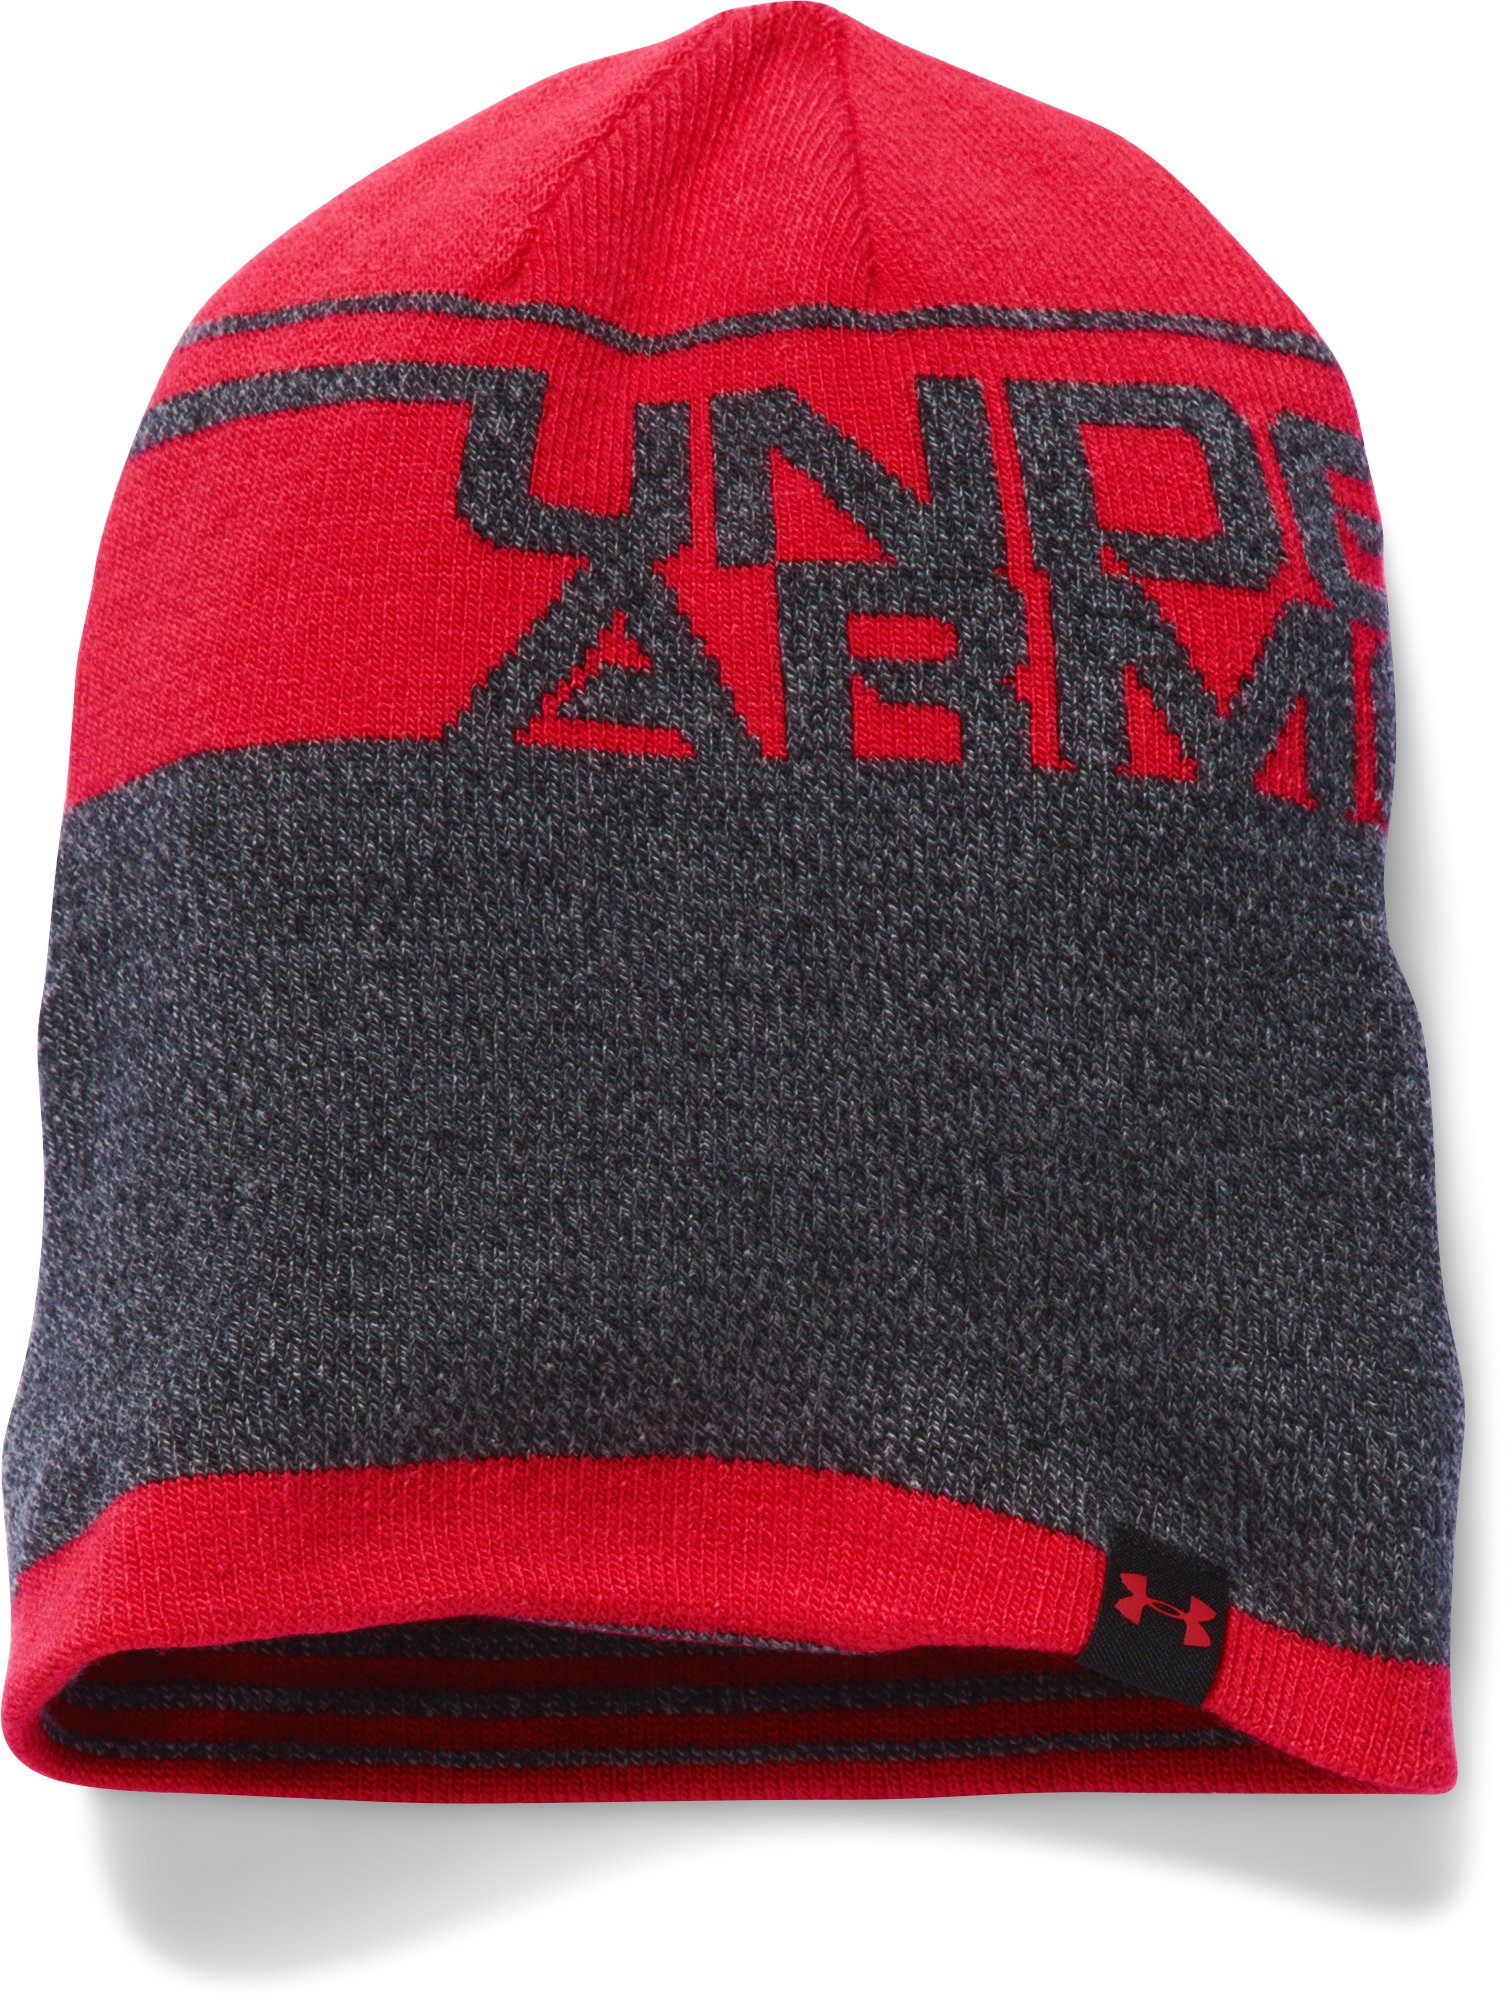 Boys' UA Cuff Billboard Beanie, Red, undefined